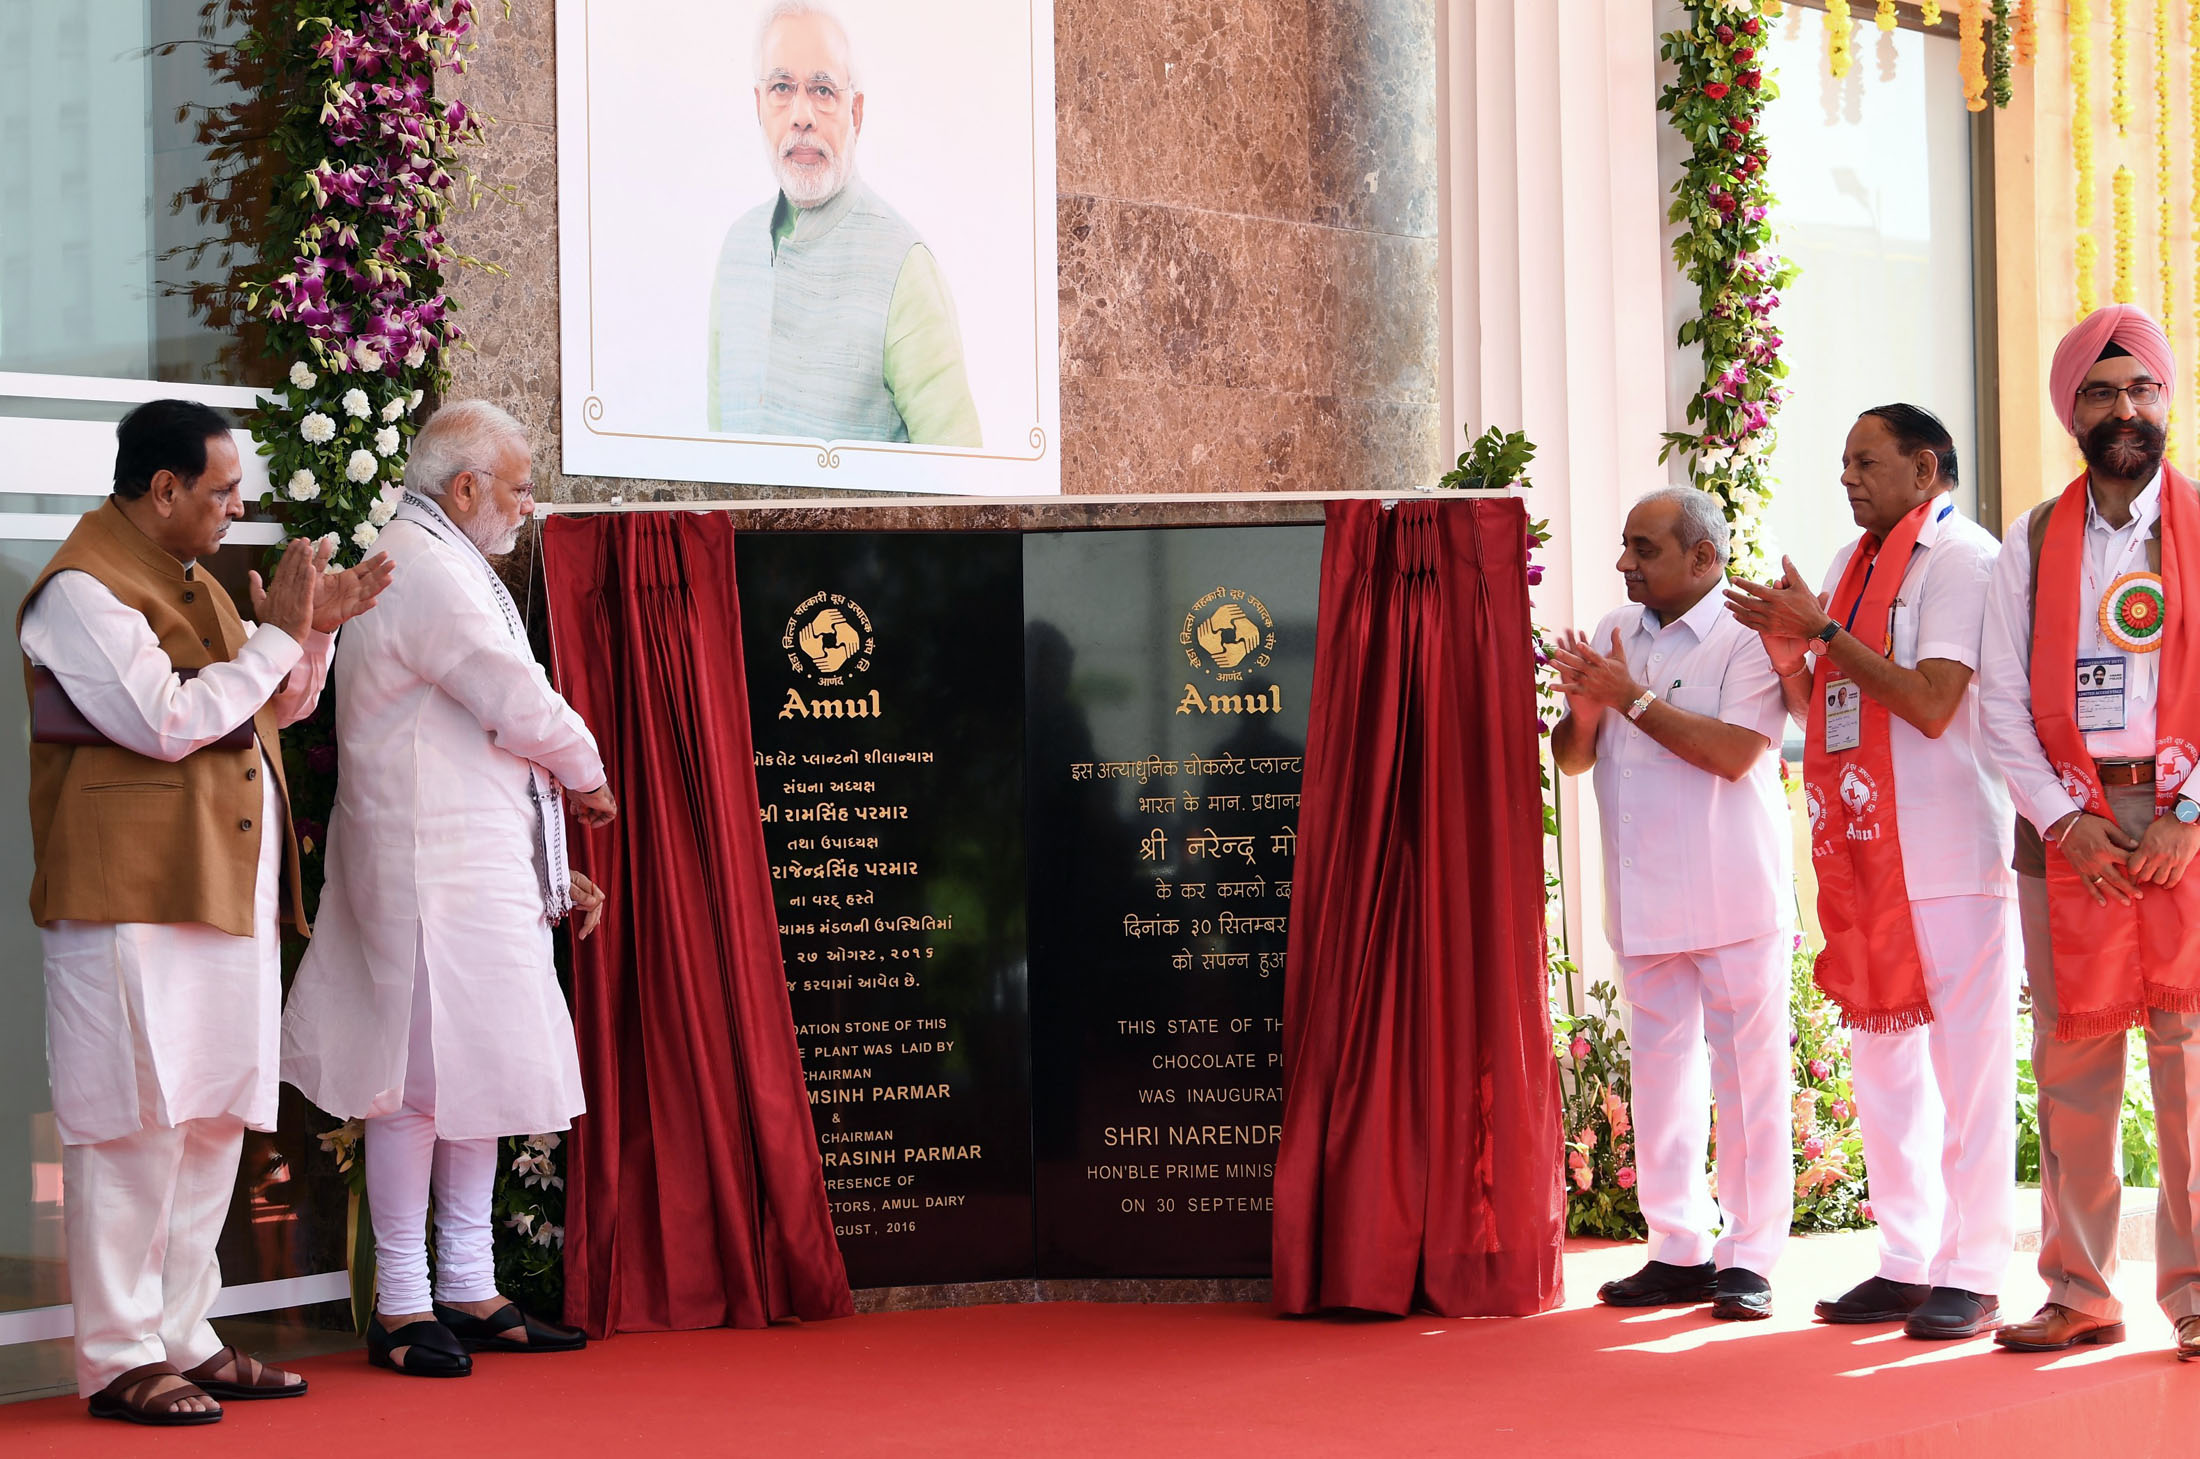 The Prime Minister, Narendra Modi inaugurating the Amul's ultra-modern Chocolate Plant, at Anand, Gujarat on September 30, 2018. The Chief Minister of Gujarat, Vijay Rupani, the Minister of State for Tribal Affairs, Jaswantsinh Sumanbhai Bhabhor and other dignitaries are also seen.